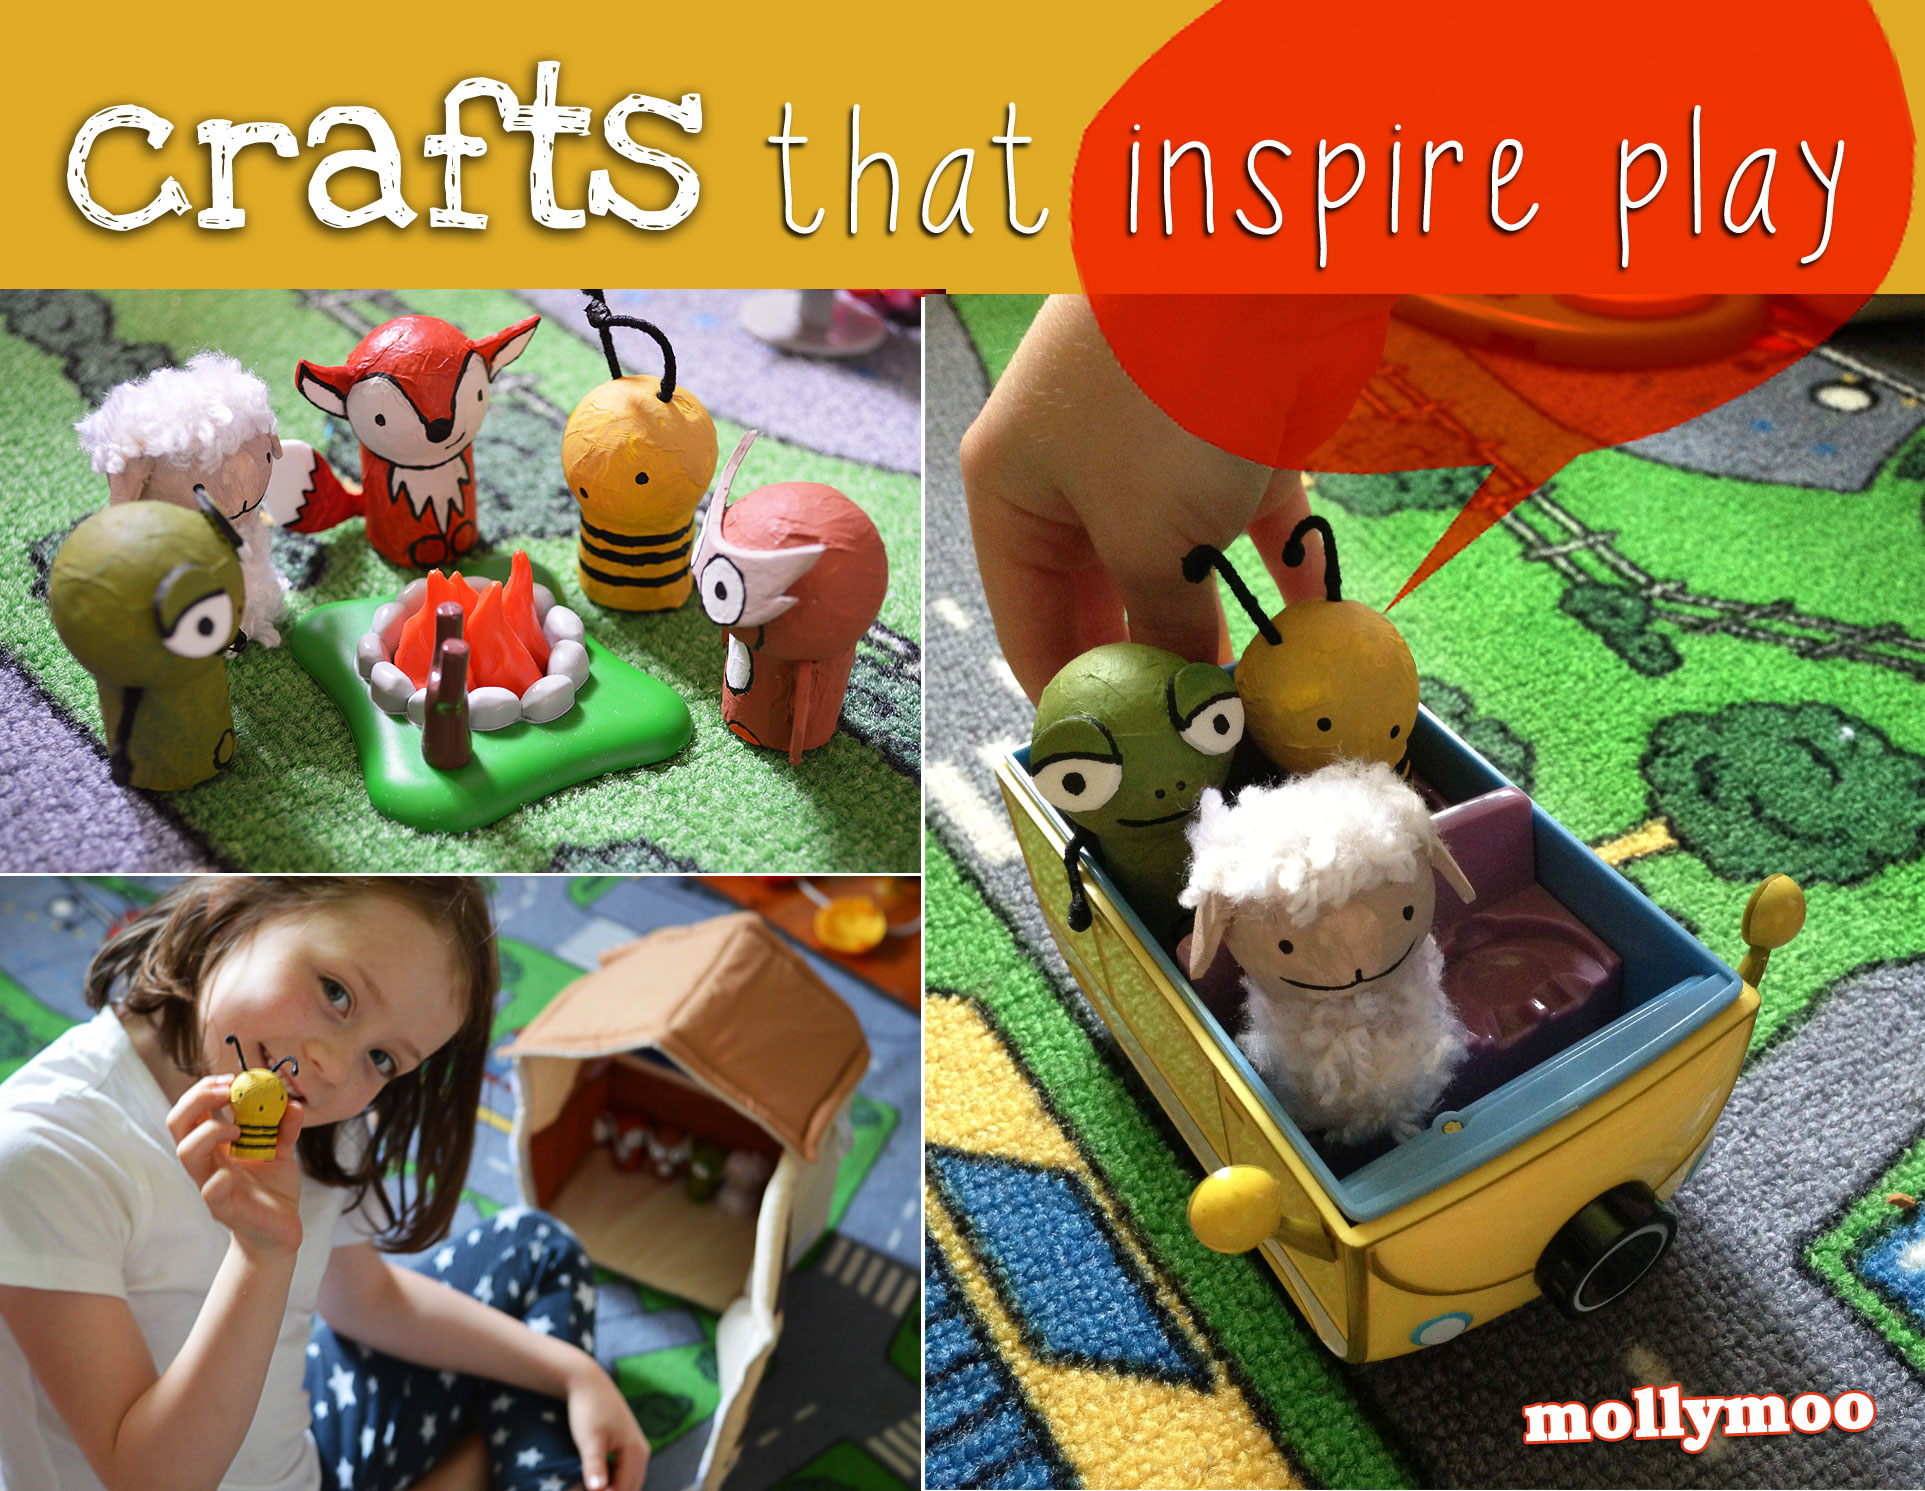 crafts by Michelle McInerney of MollyMoo